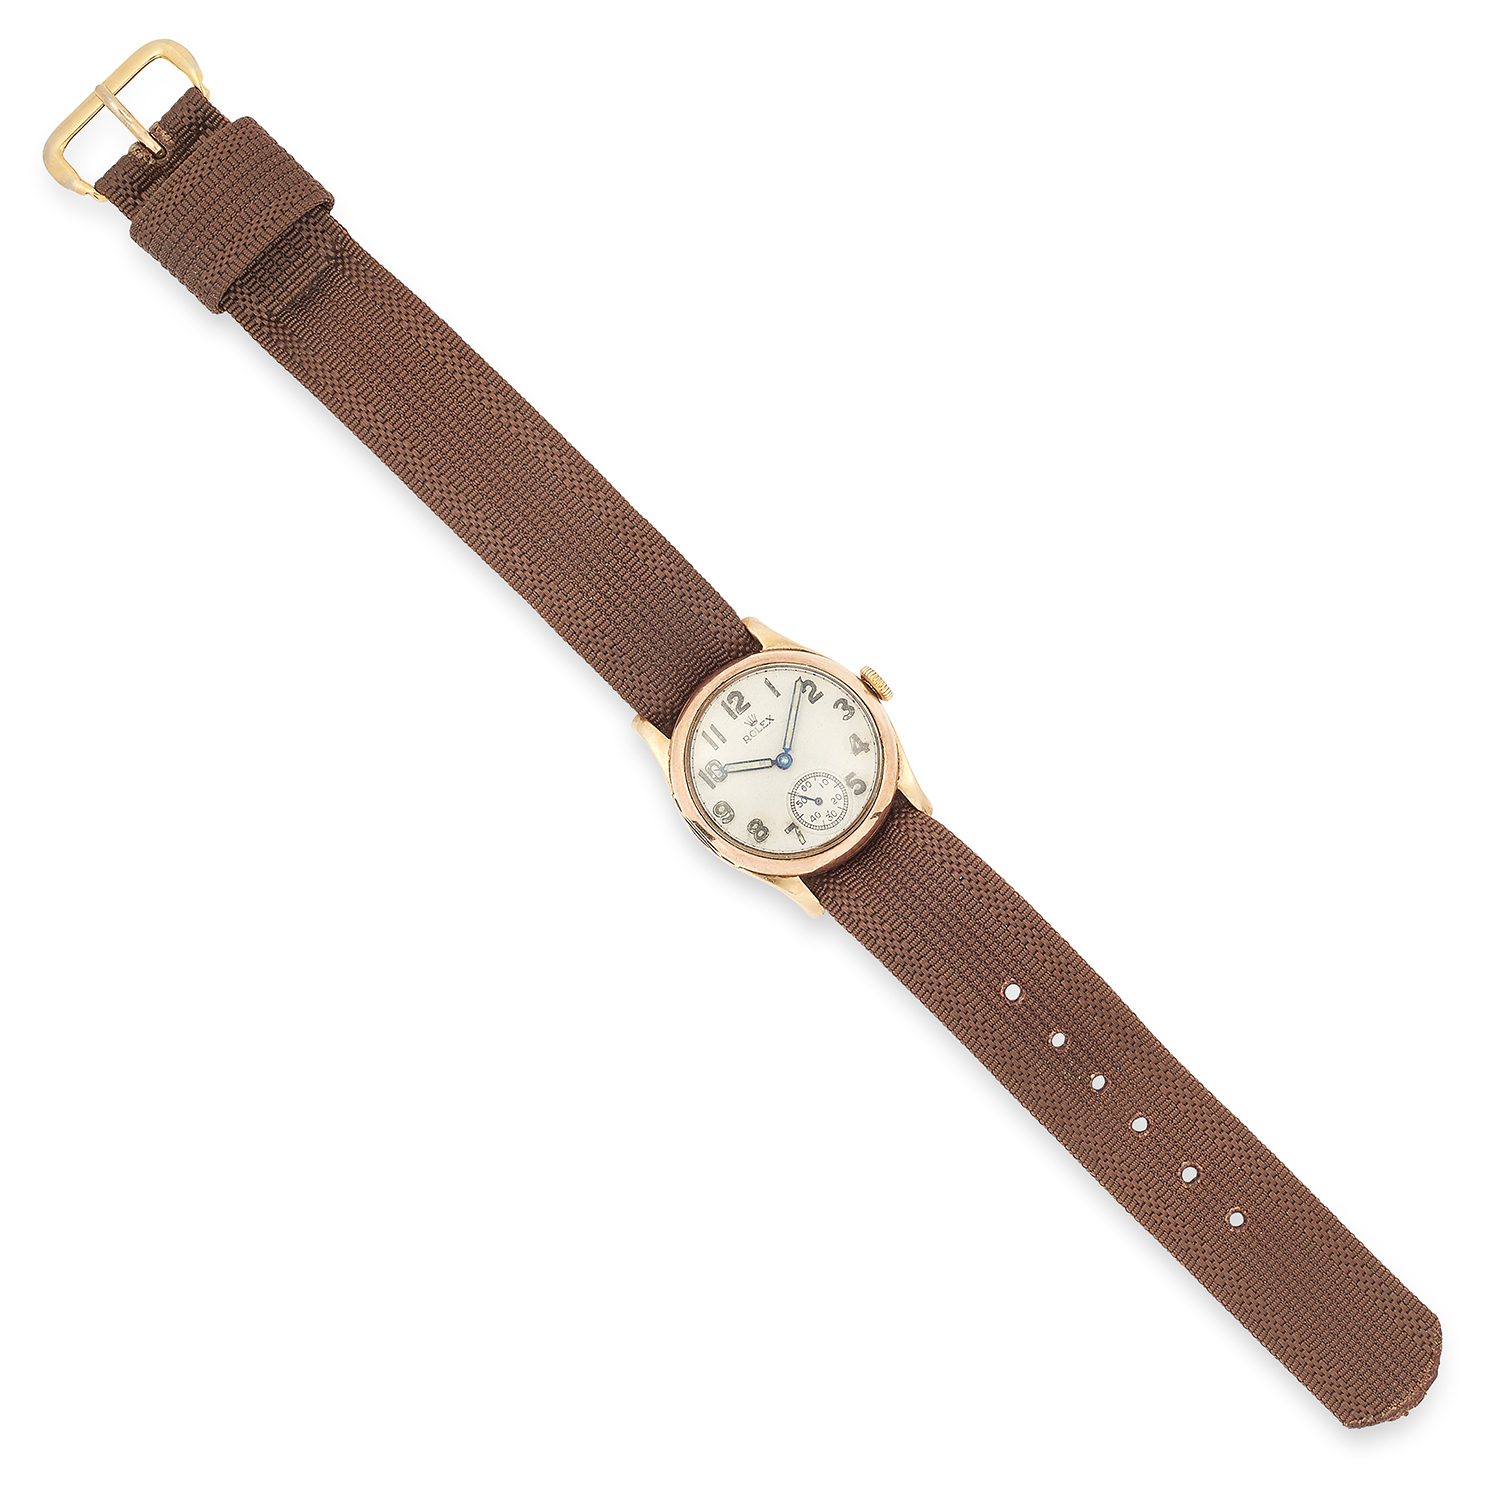 Los 125 - WRISTWATCH, ROLEX with a gold bezel and brown fabric strap, 22.5cm, 22.7g.